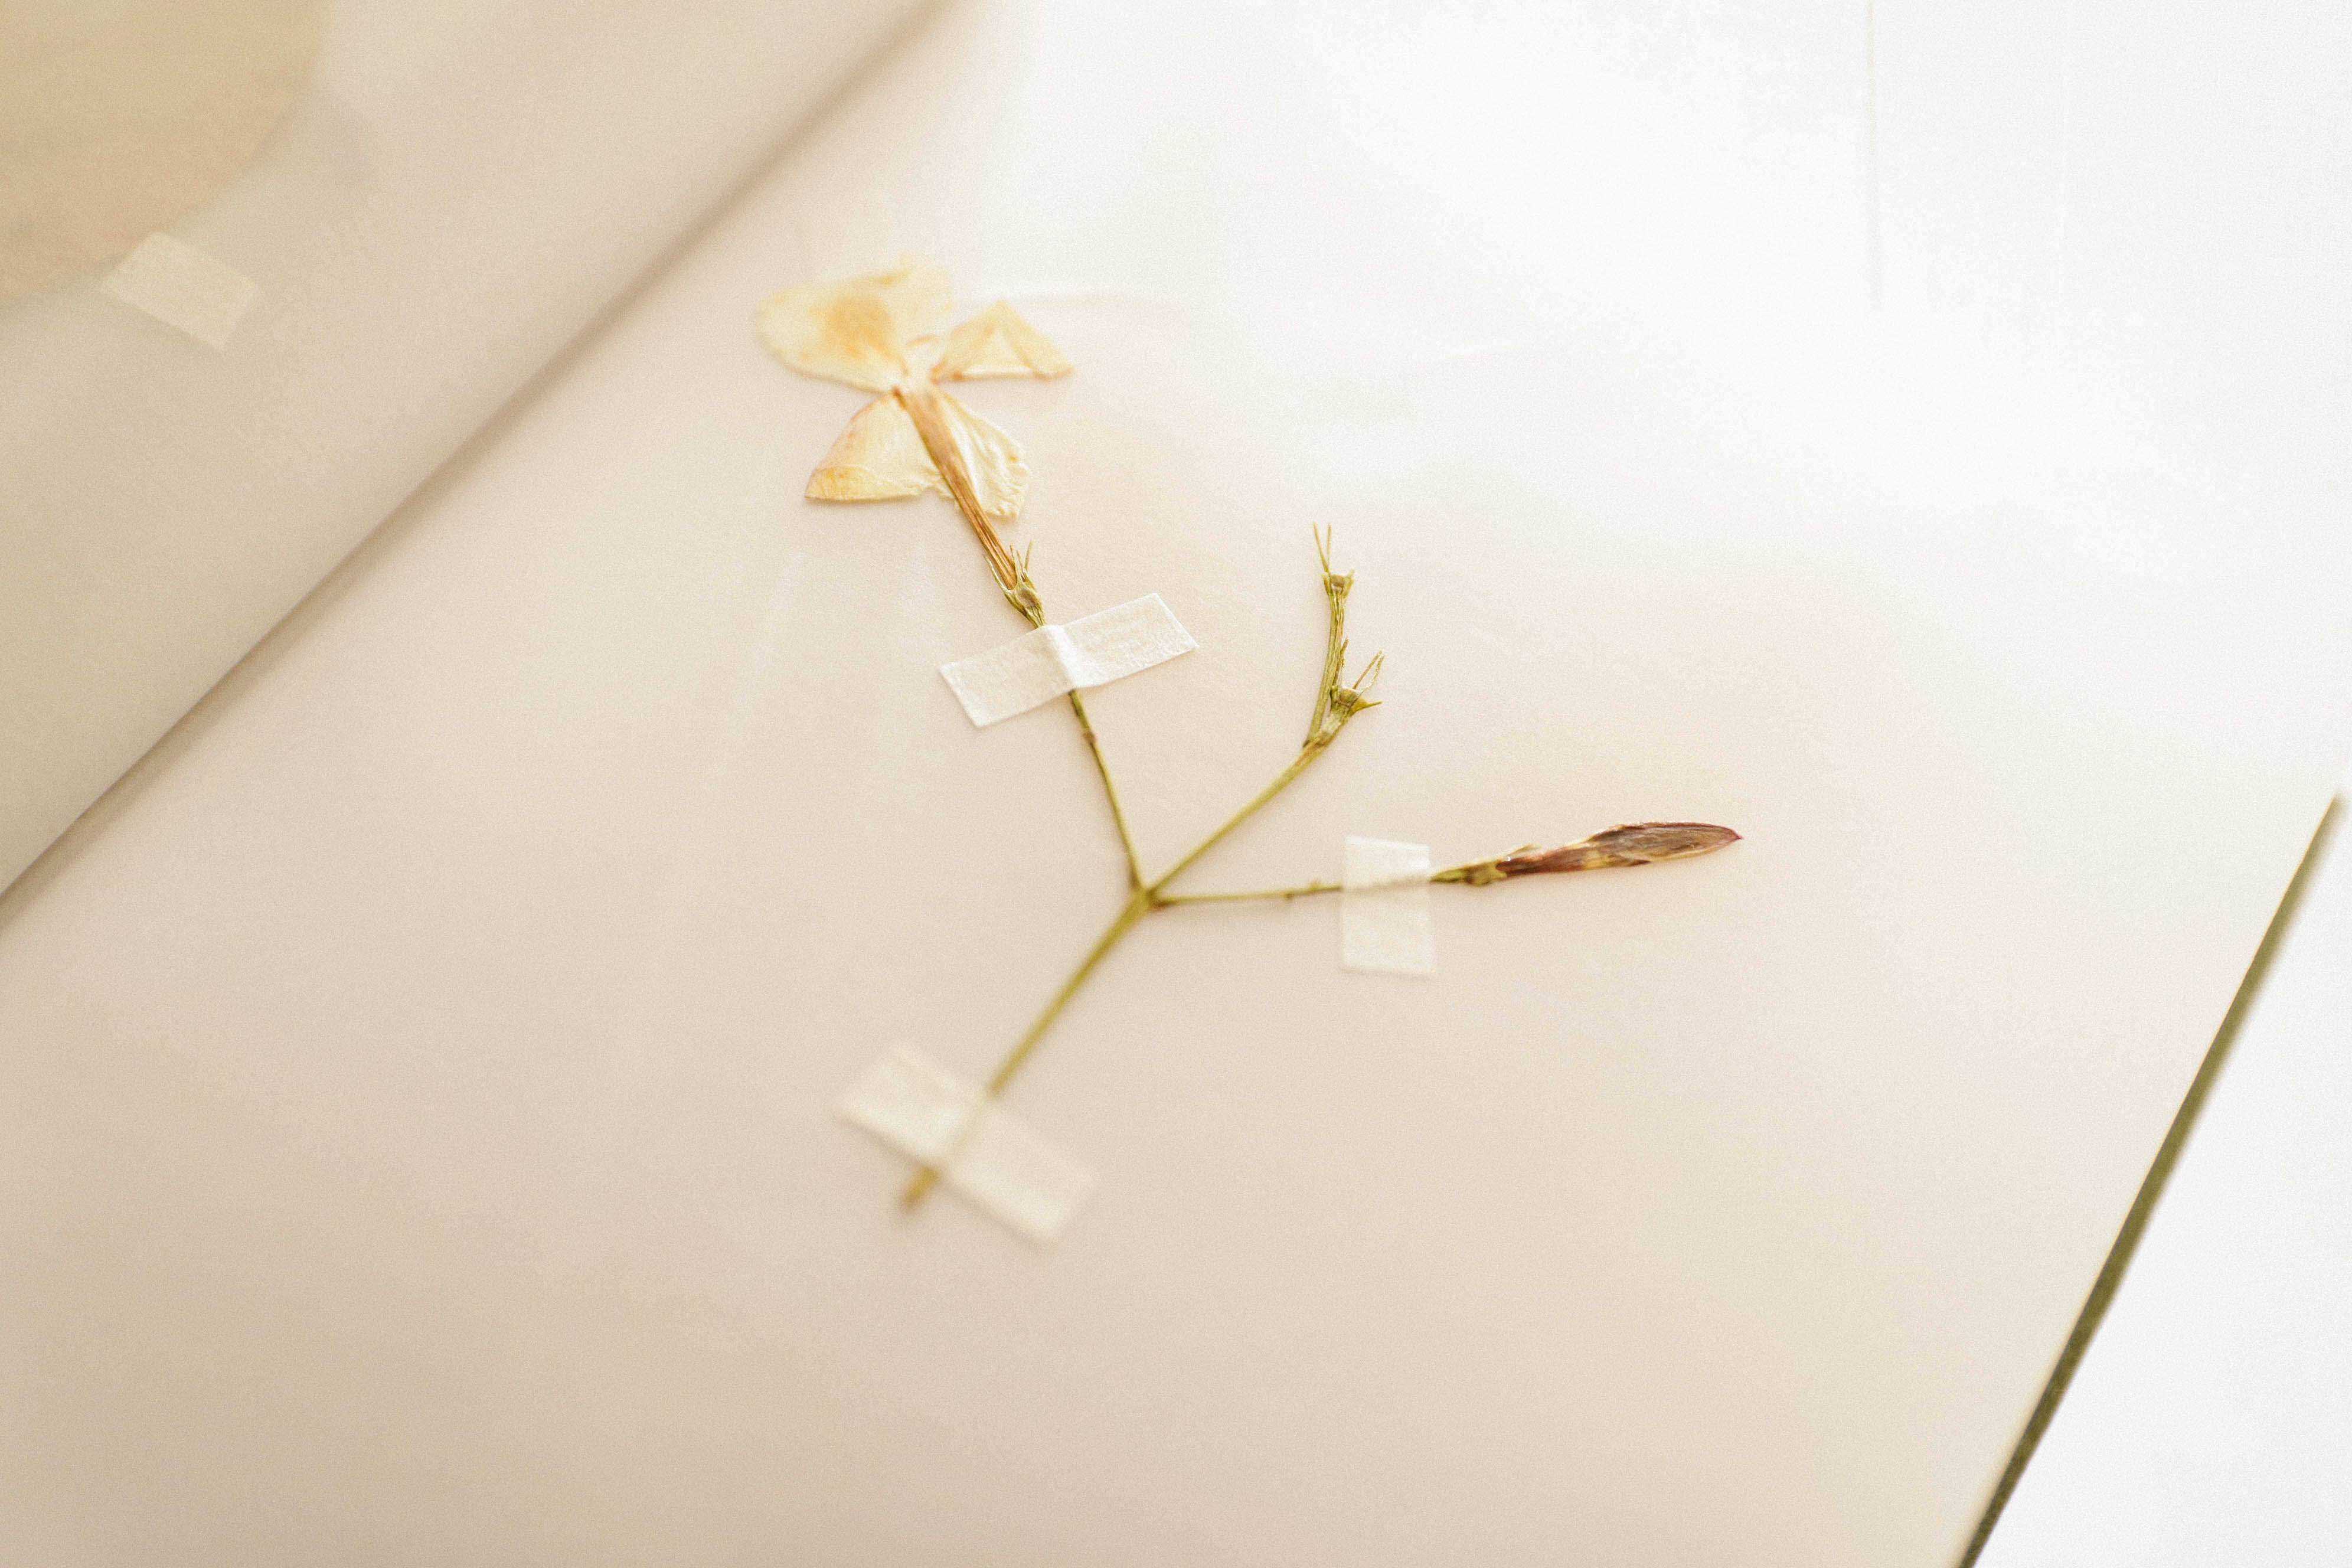 Dried White Flower Taped in Book